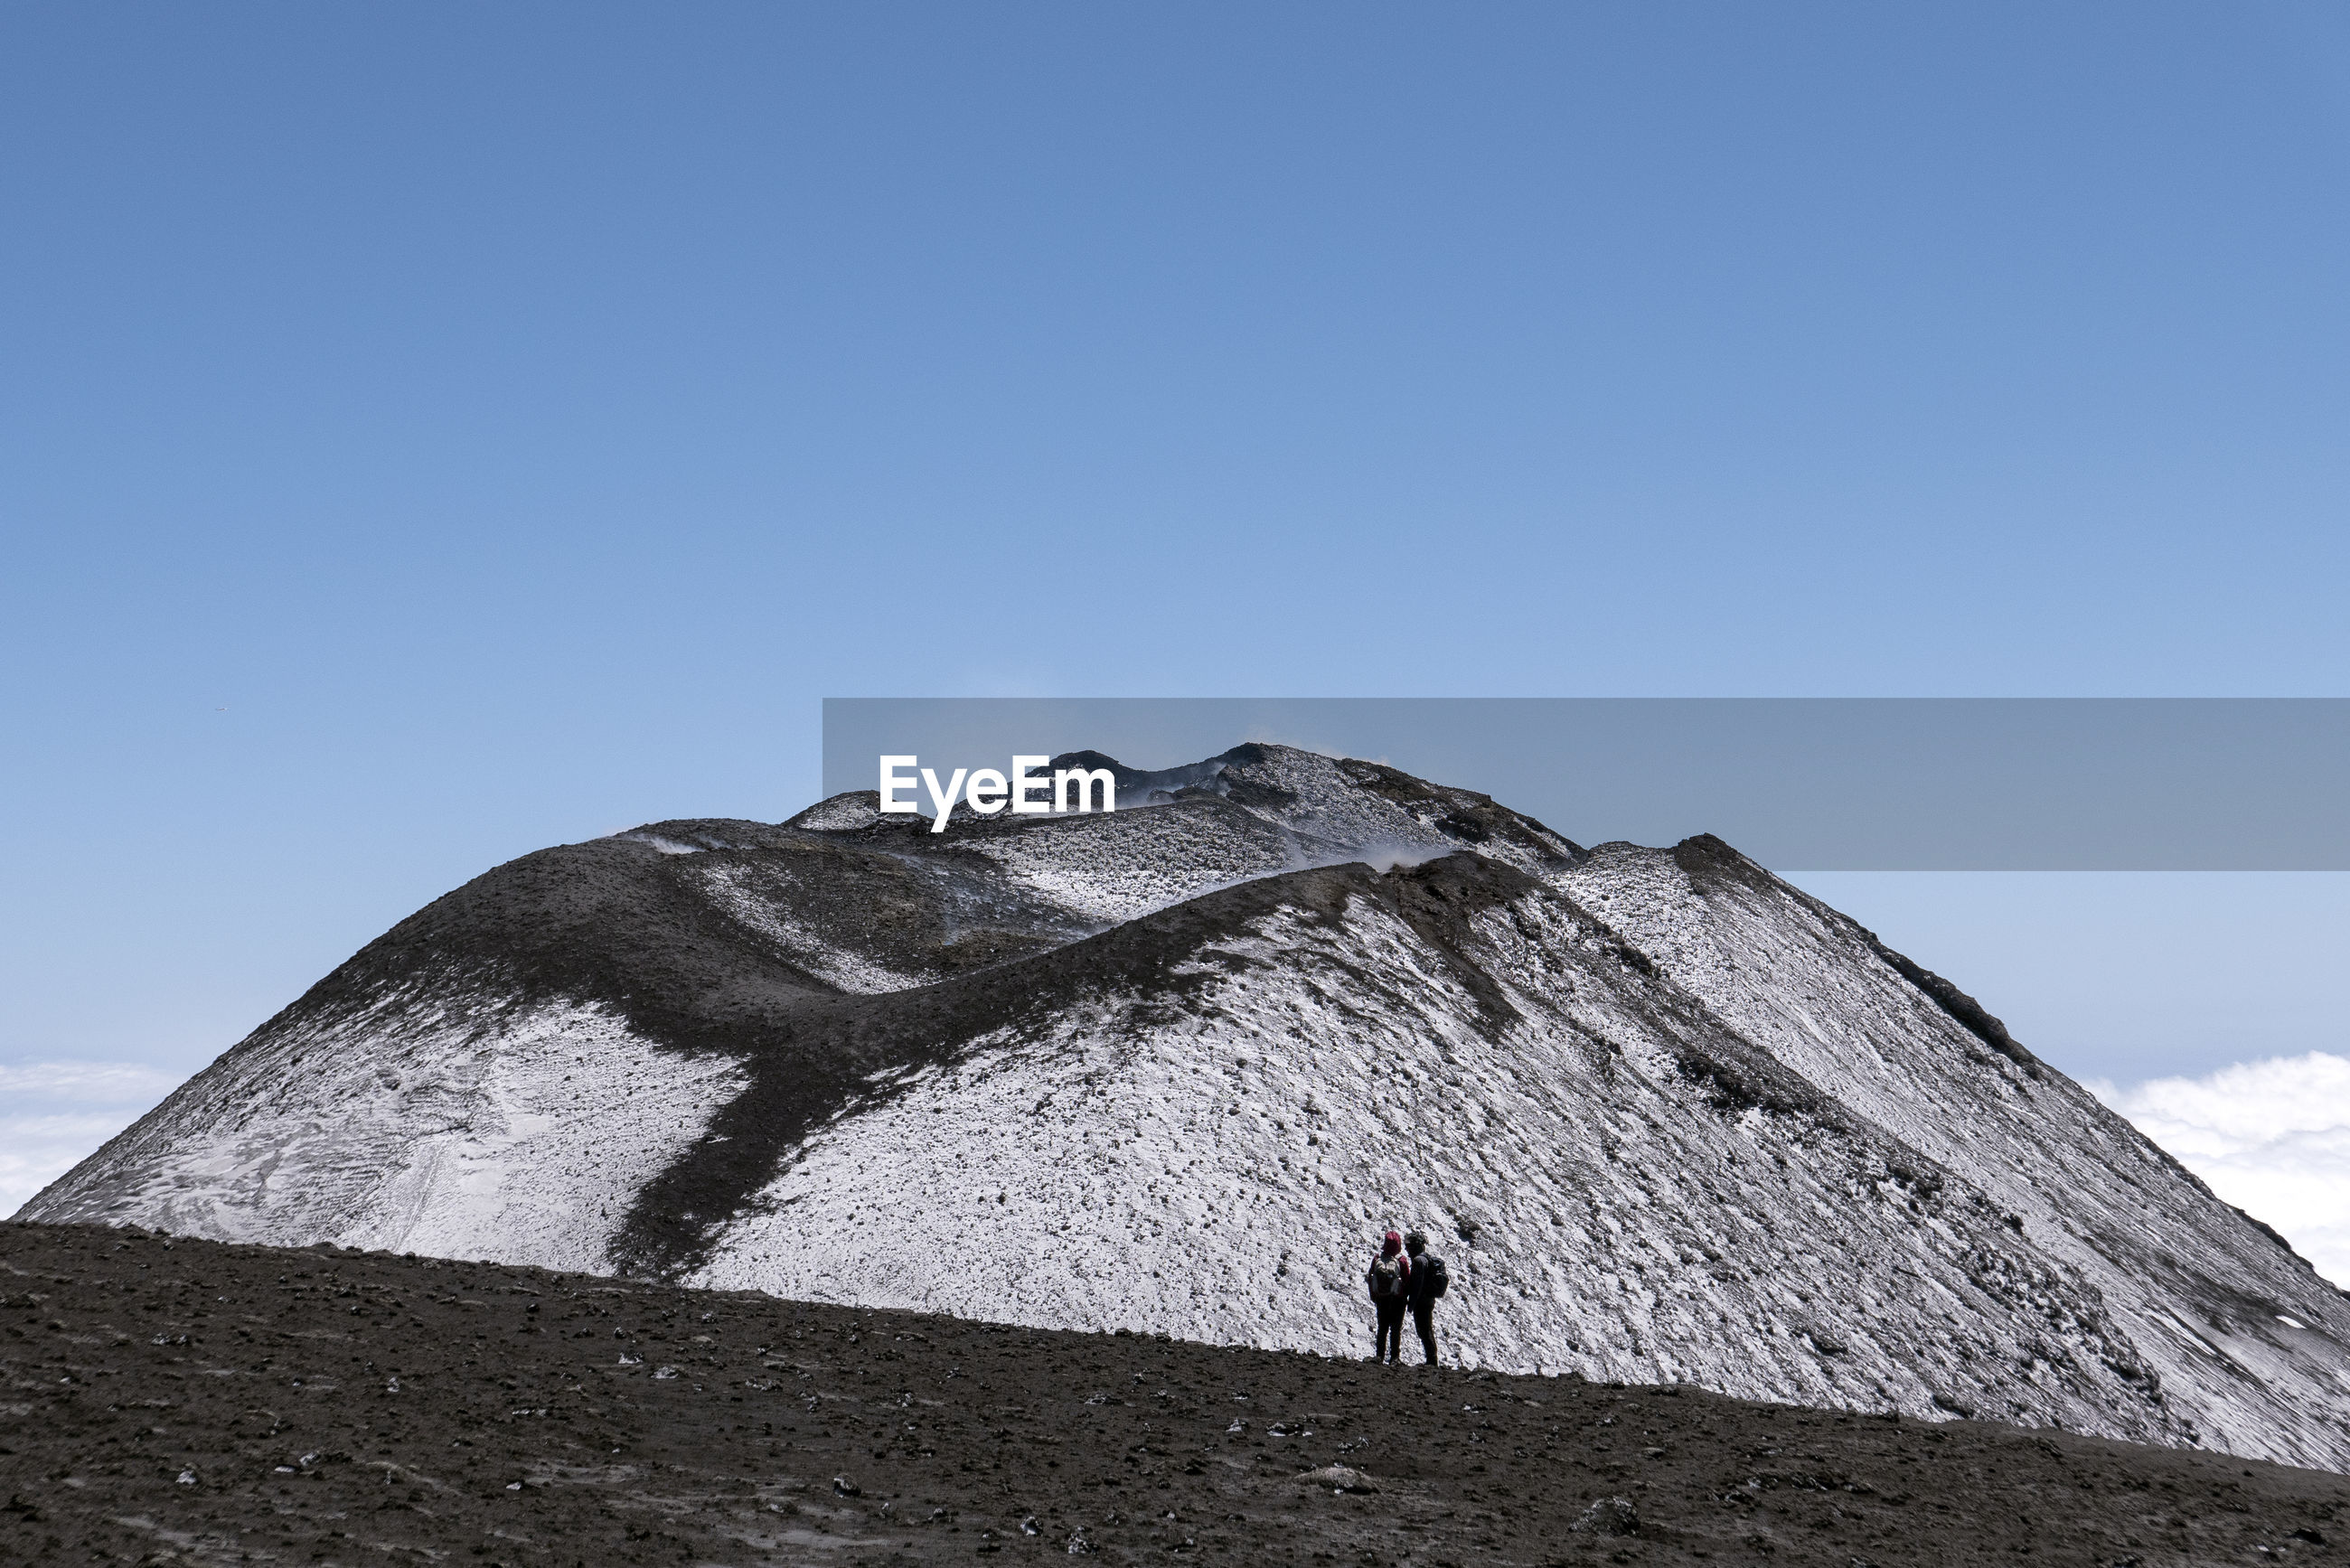 FULL LENGTH OF MAN STANDING ON MOUNTAIN AGAINST CLEAR SKY